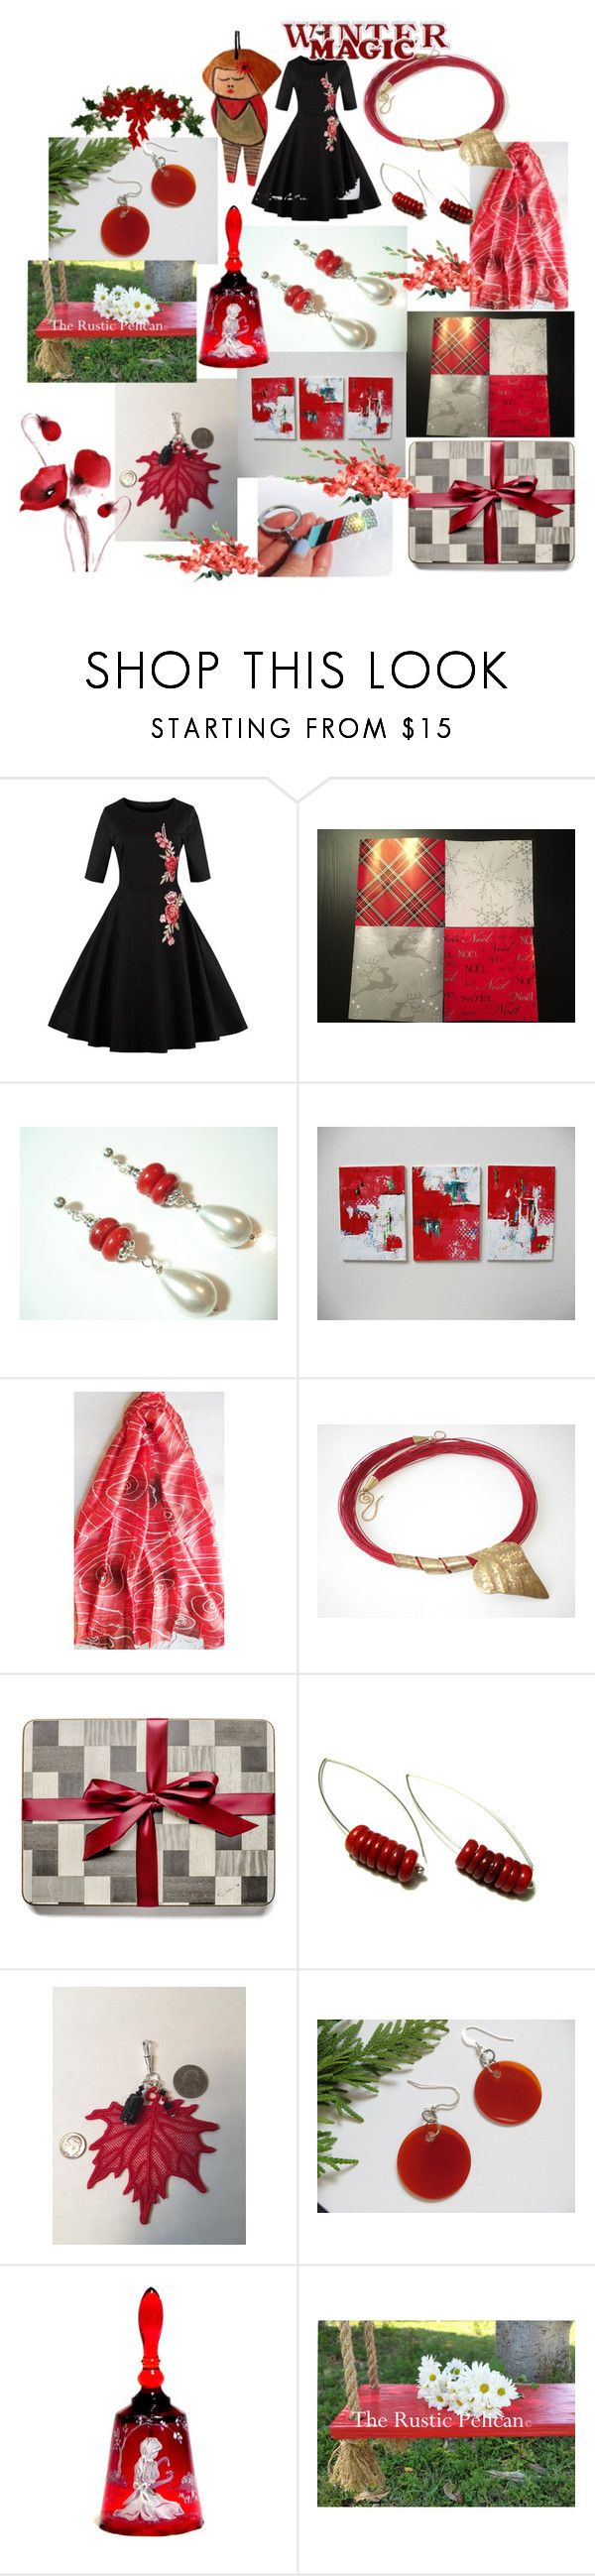 """Holidays Gifts"" by anna-recycle ❤ liked on Polyvore featuring Hostess, BMW, modern, rustic and vintage"